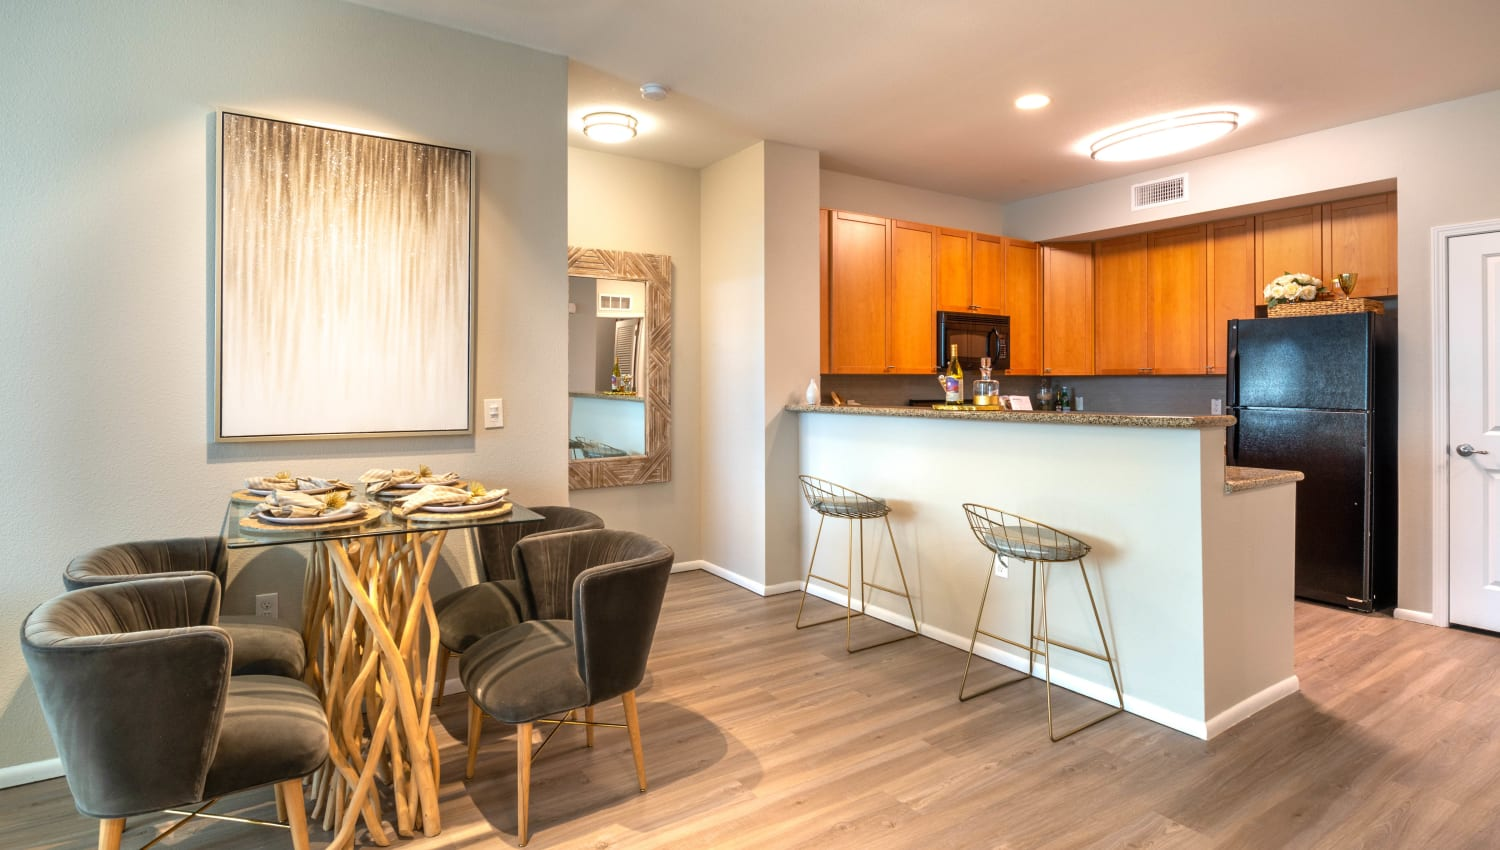 View of the kitchen over the breakfast bar from a model home's dining nook at Olympus at Daybreak in South Jordan, Utah